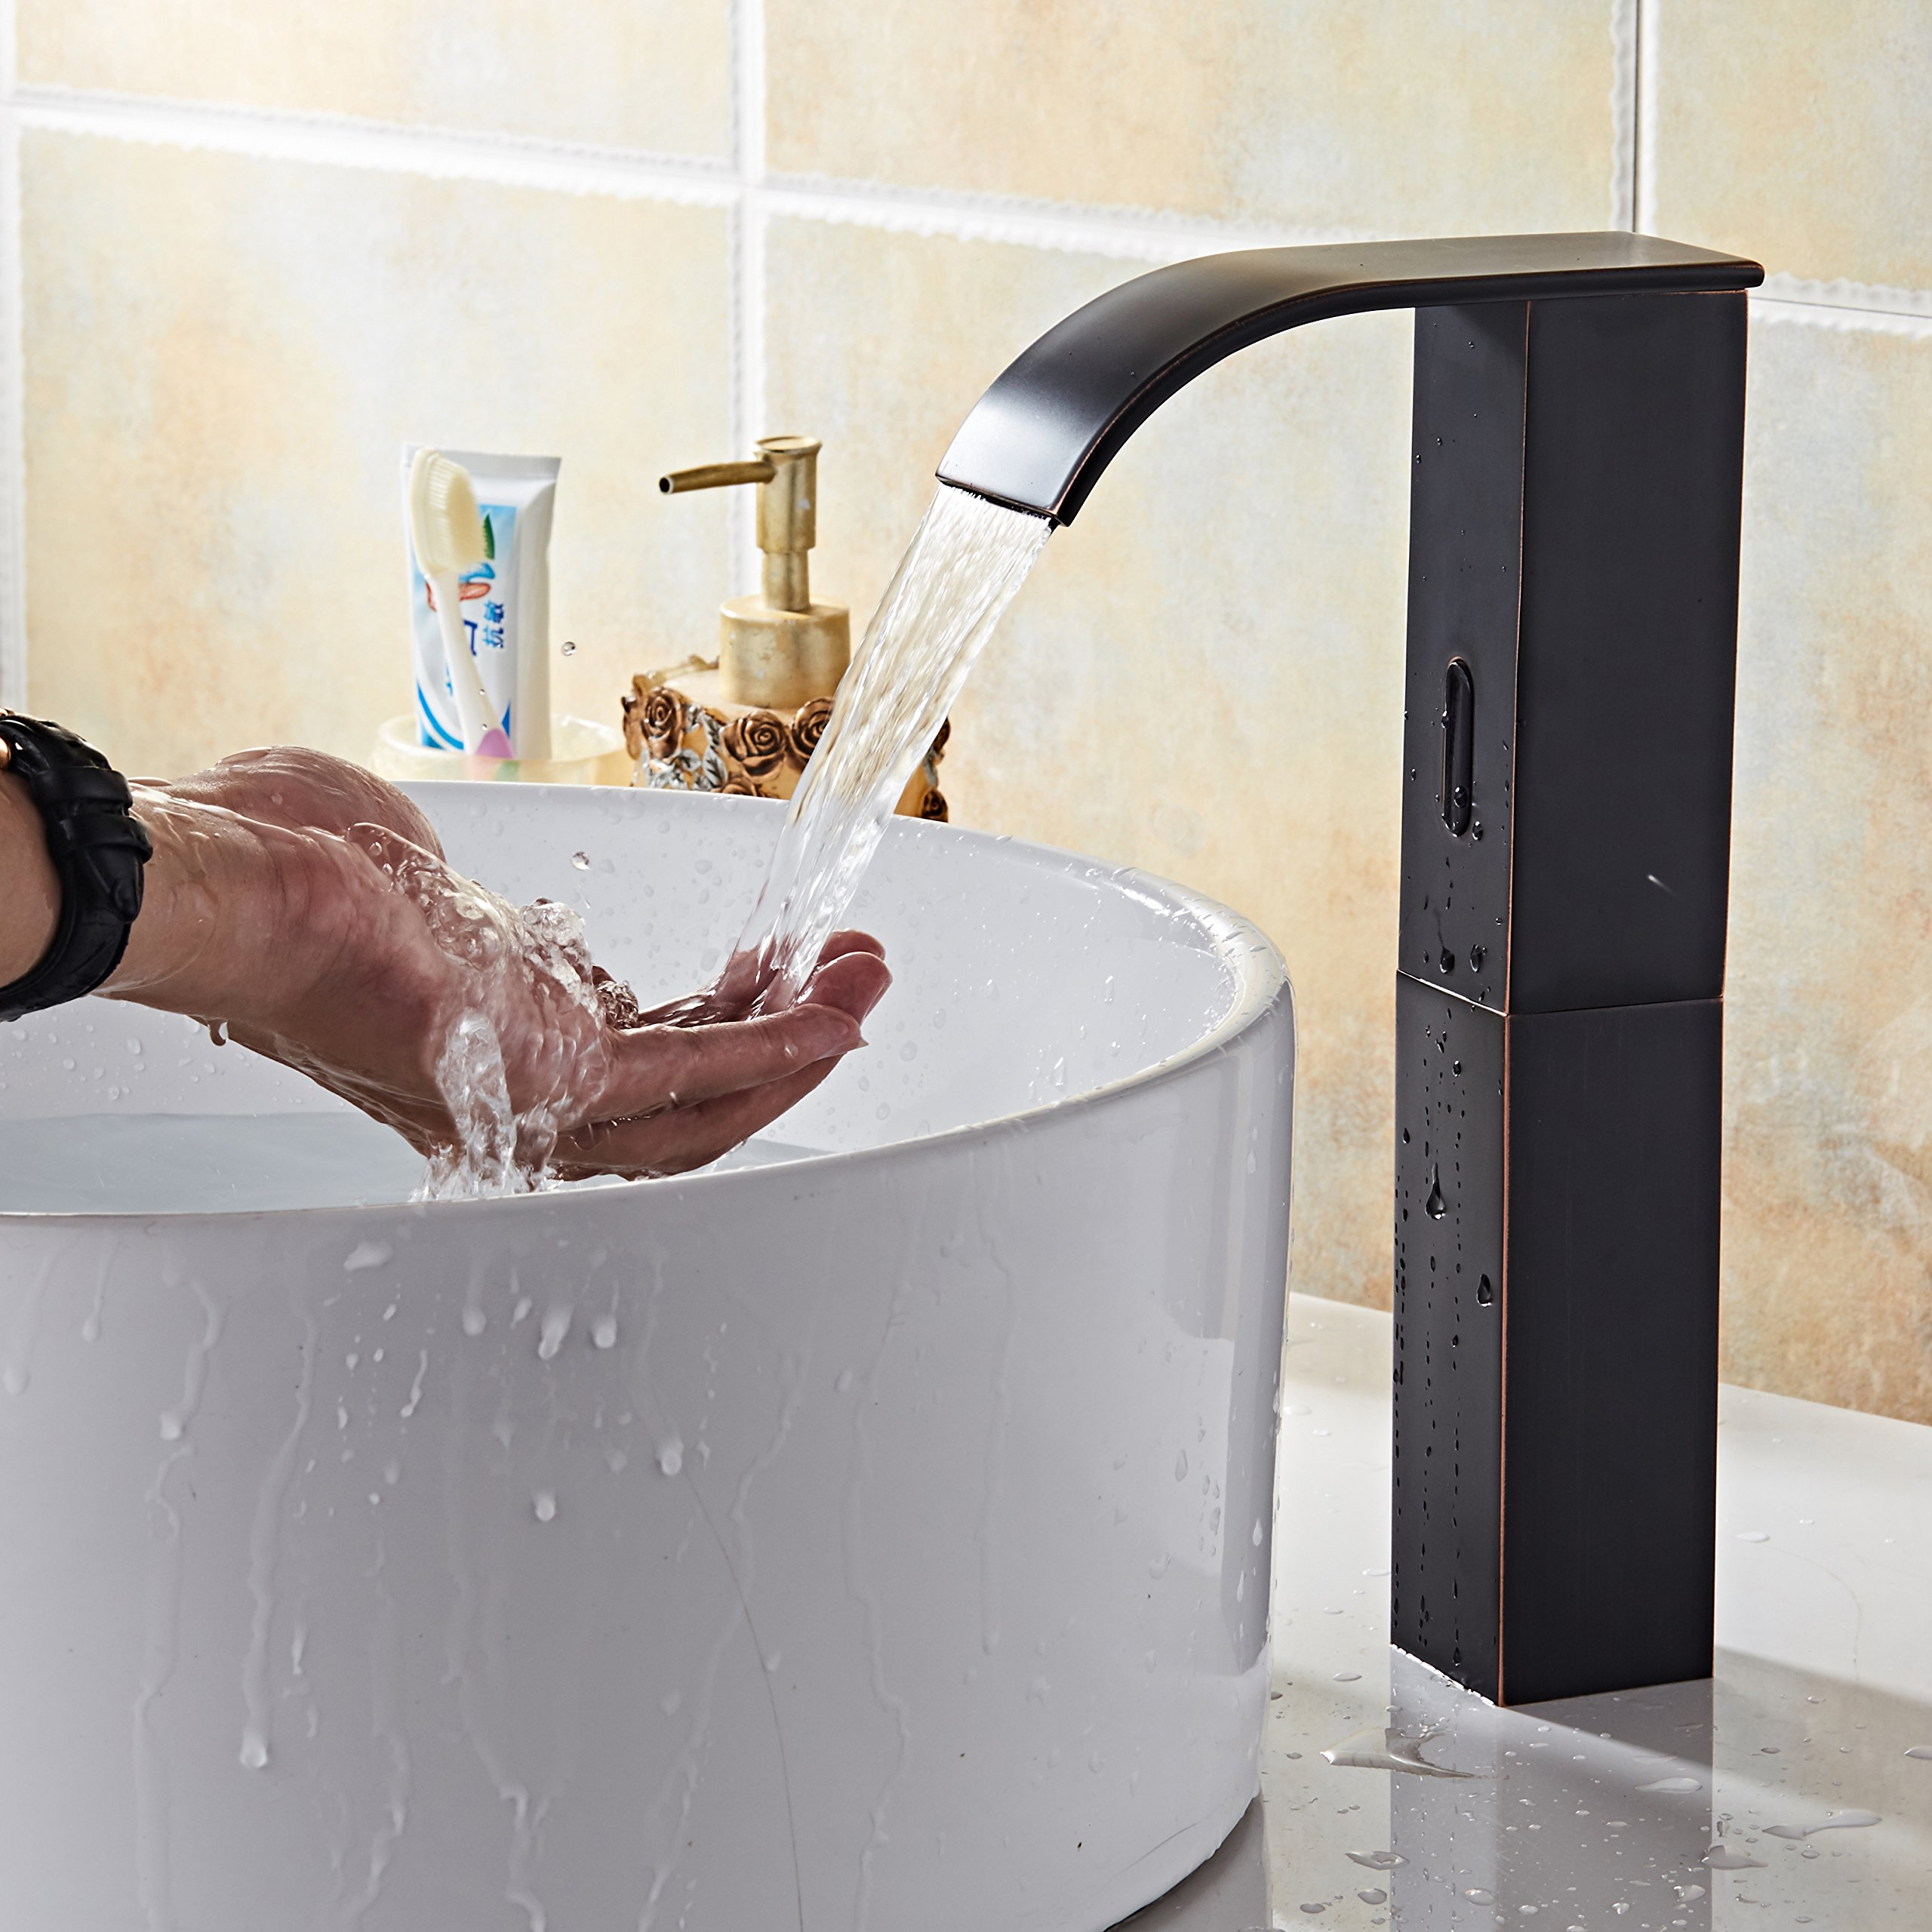 Electronic Automatic Sensor Touchless Bathroom Sink Faucet, Motion ...